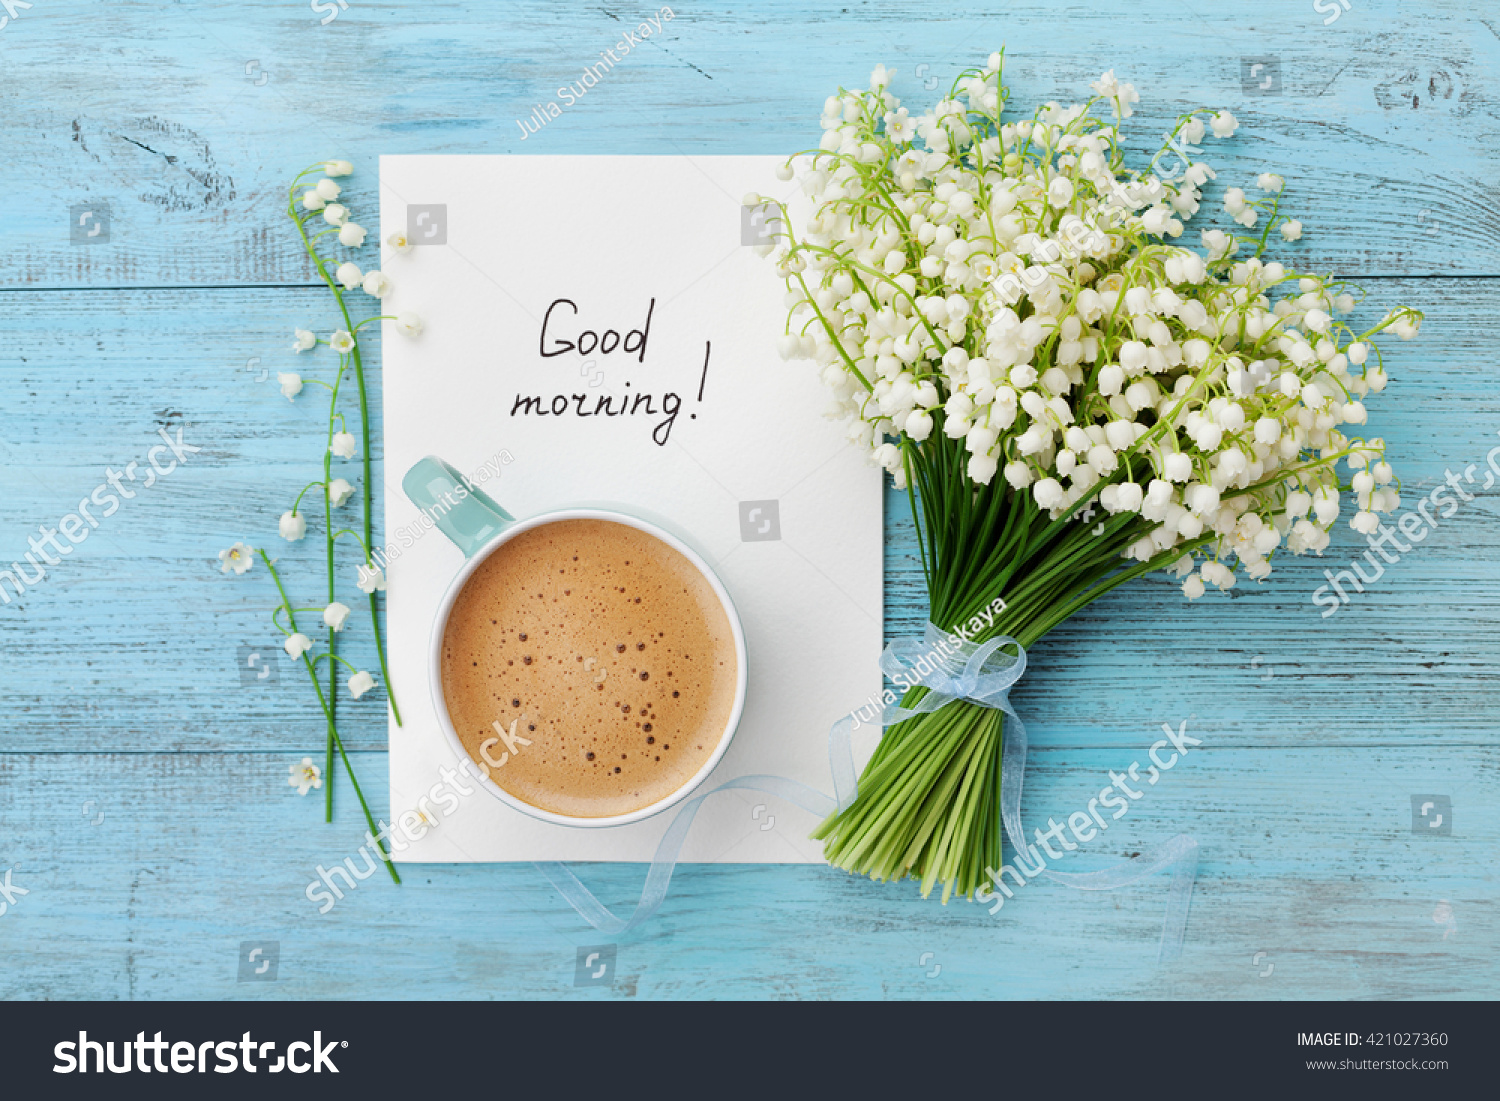 Coffee mug with bouquet of flowers lily of the valley and notes good morning on turquoise rustic table from above, beautiful breakfast, vintage card, top view, flat lay #421027360